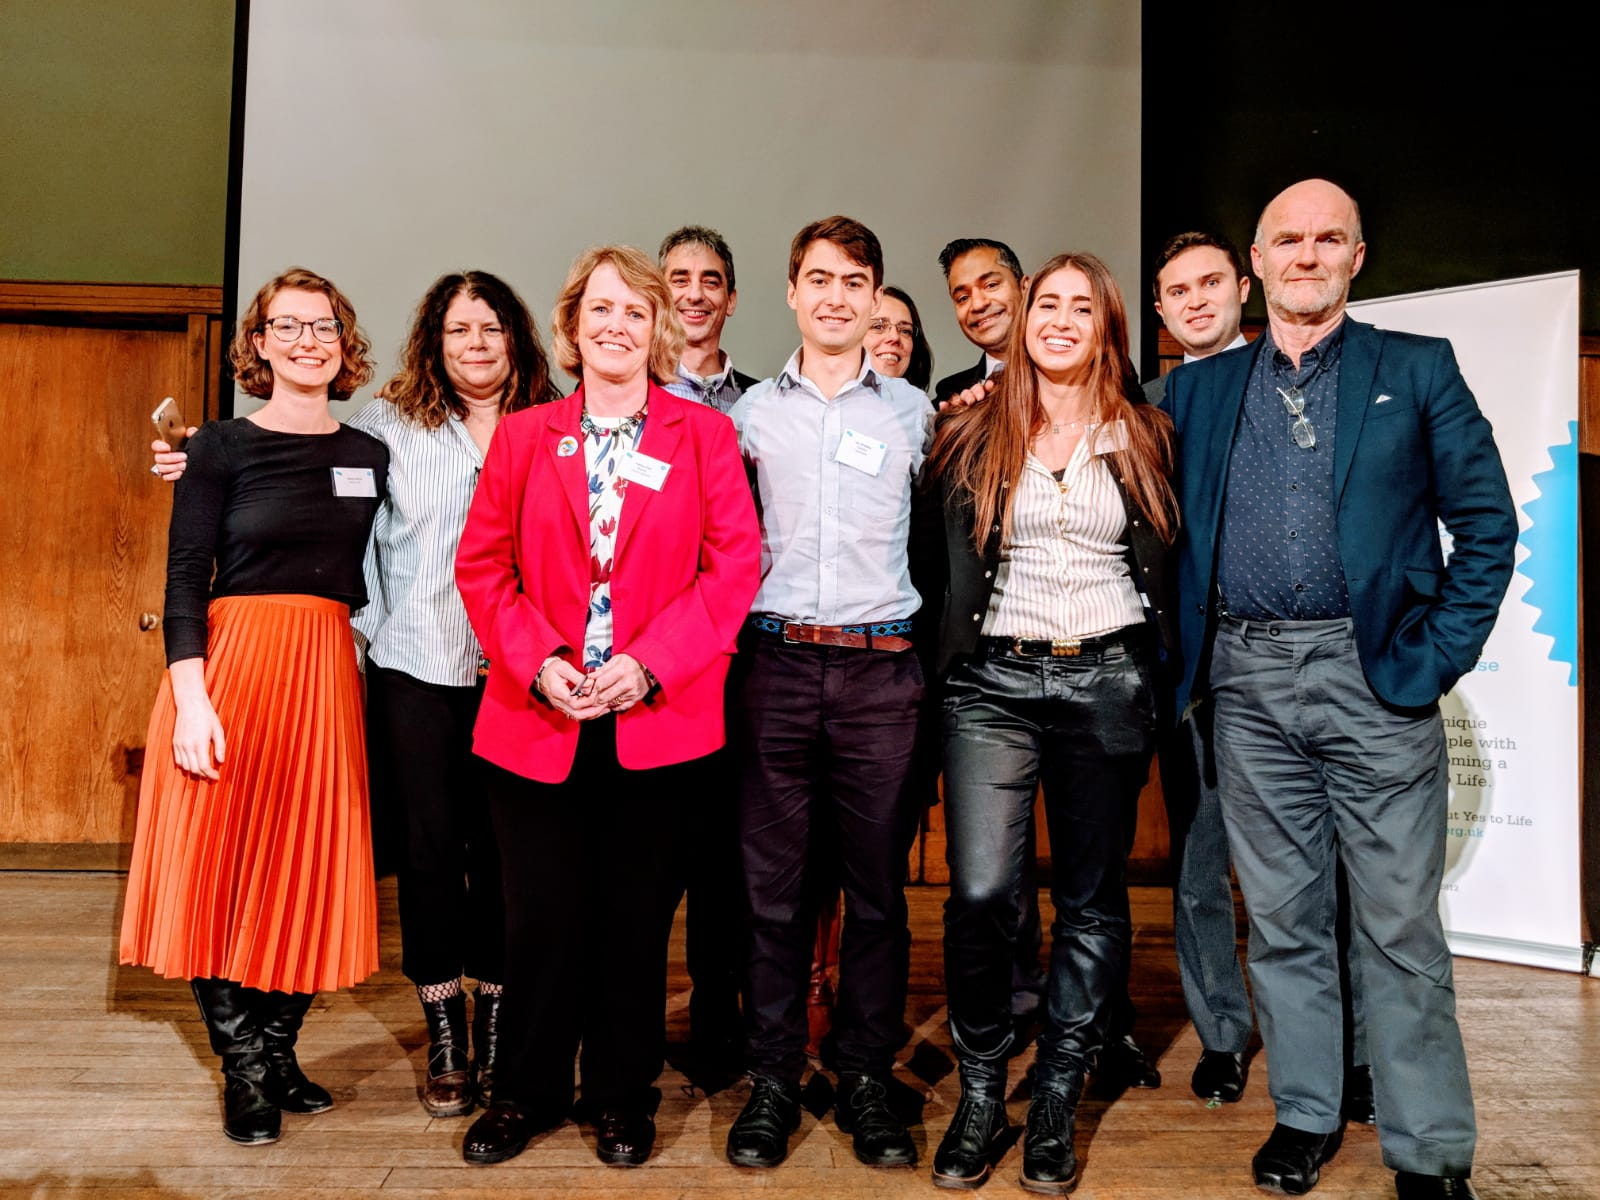 Yes to Life: Review of the Yes to Life annual conference